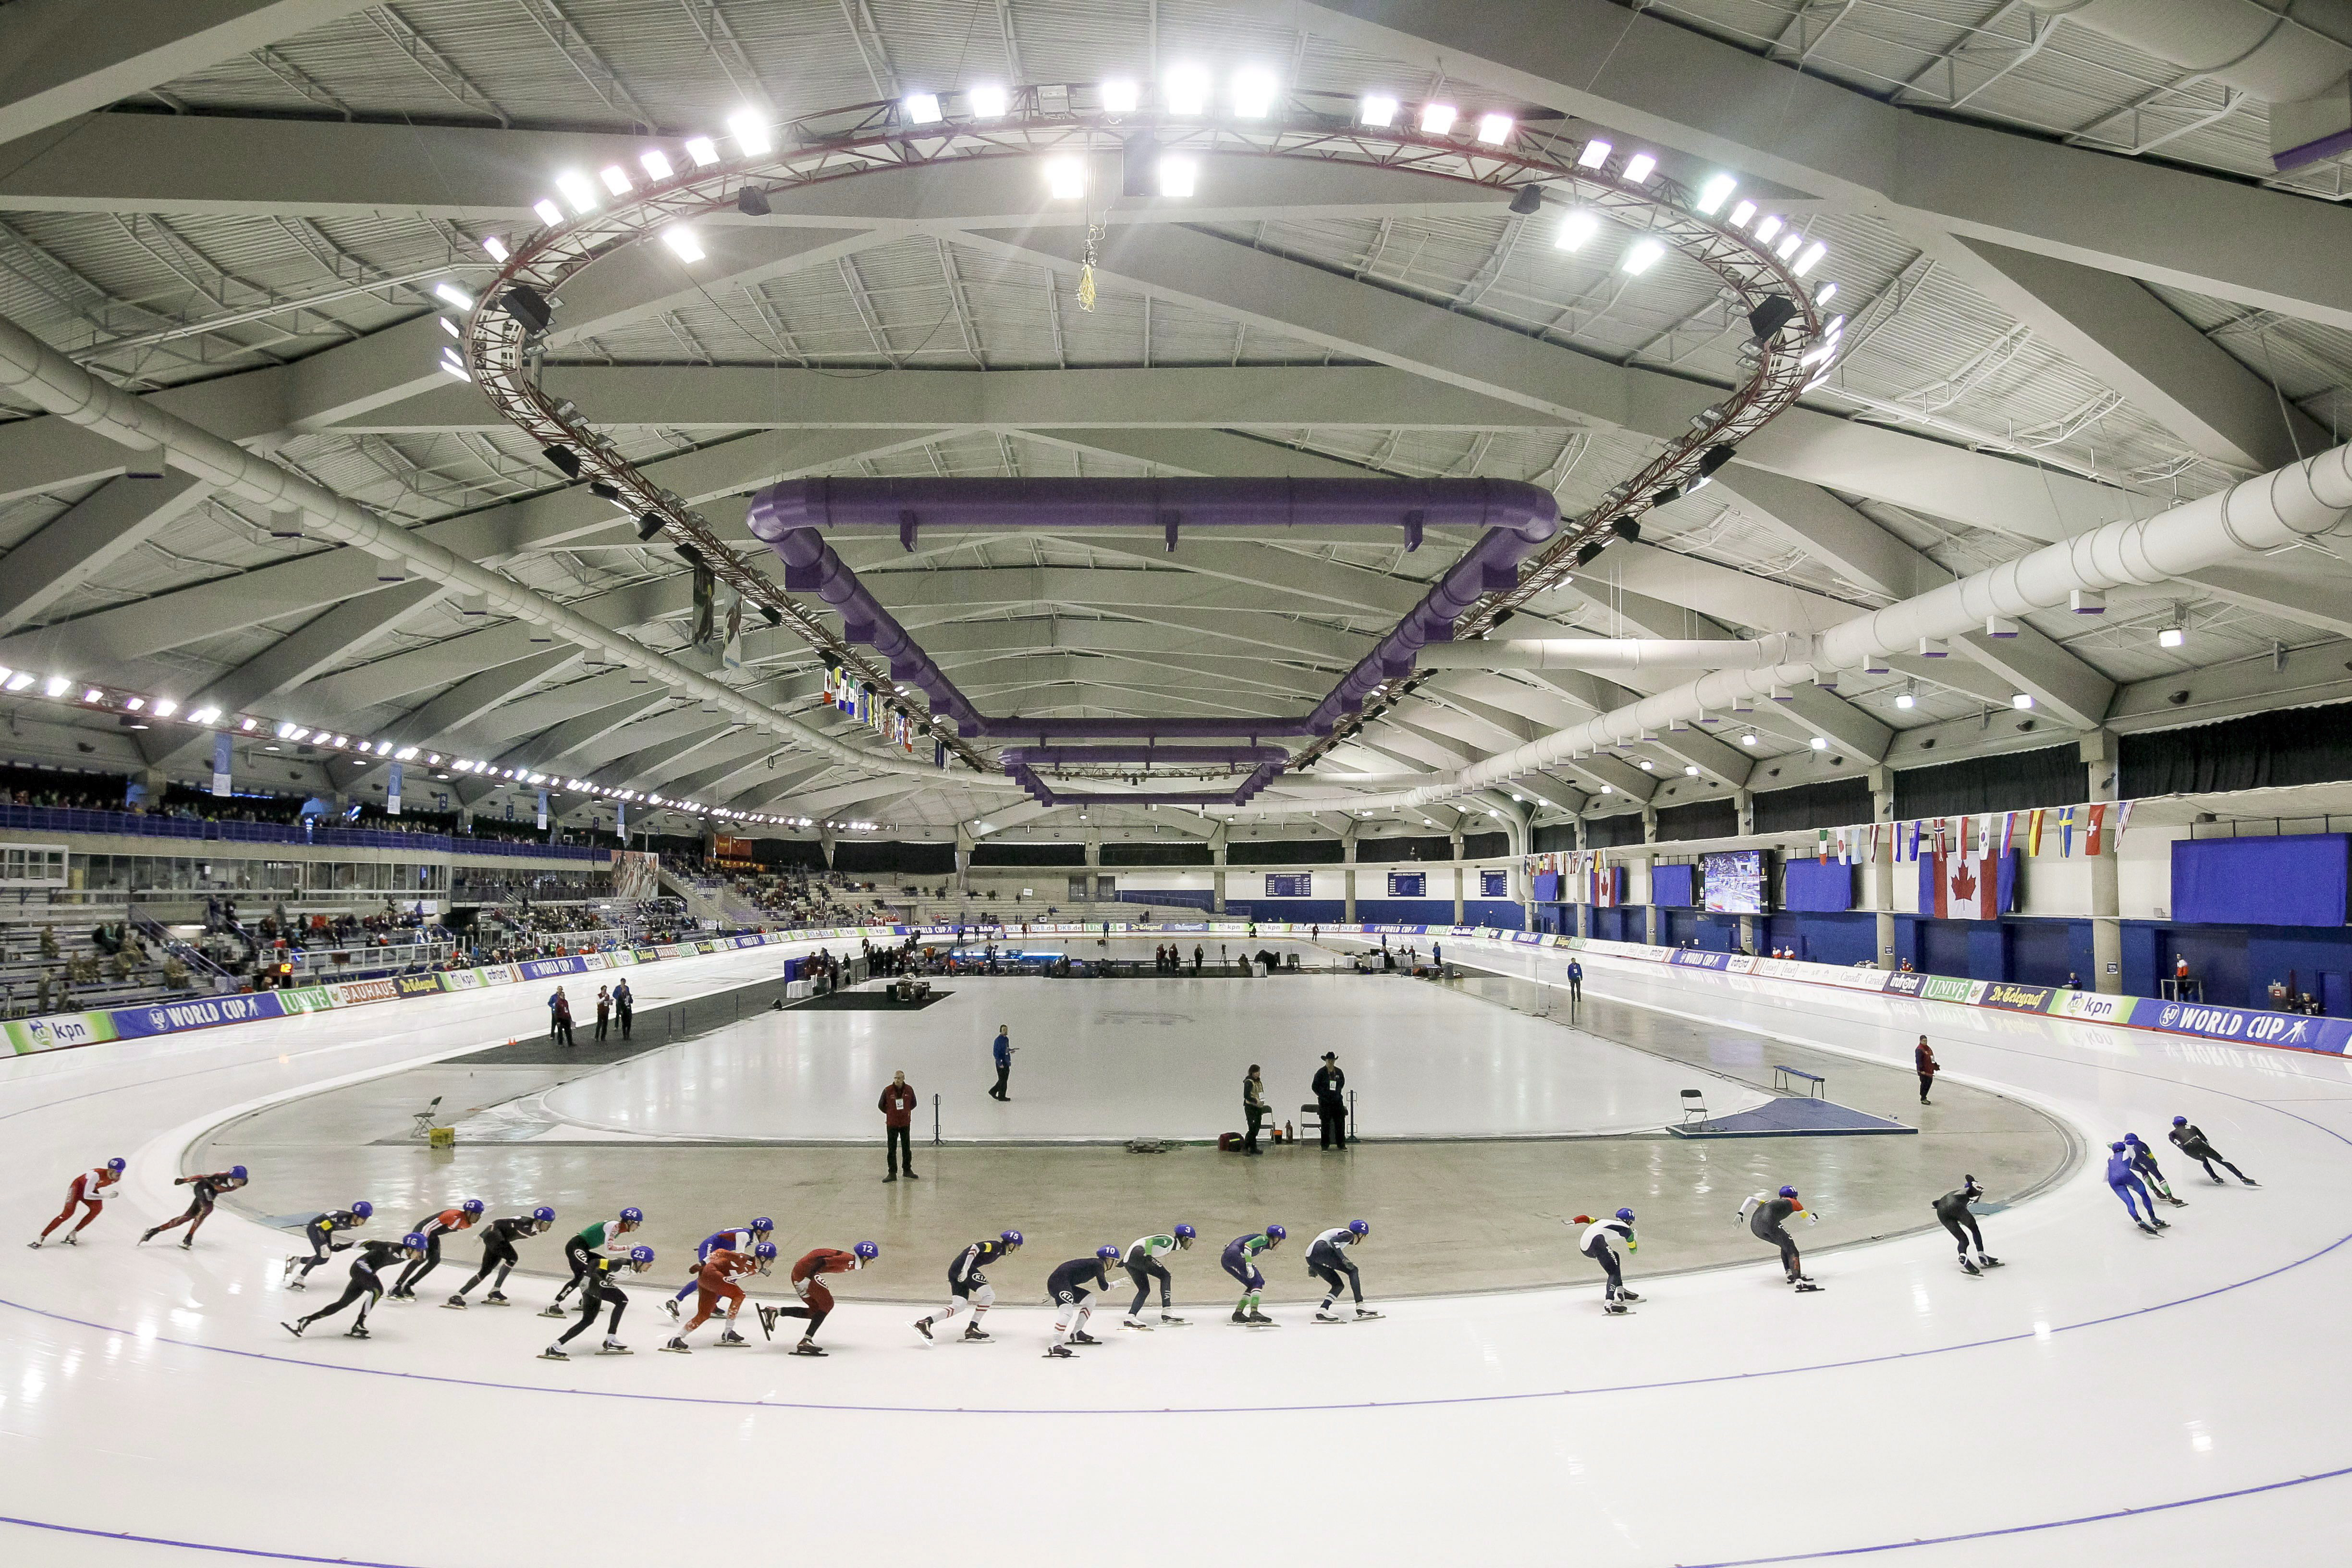 A crowd rounds a turn during the men's mass start competition at the ISU World Cup speed skating event in Calgary, Alta., Sunday, Nov. 15, 2015. THE CANADIAN PRESS/Lyle Aspinall